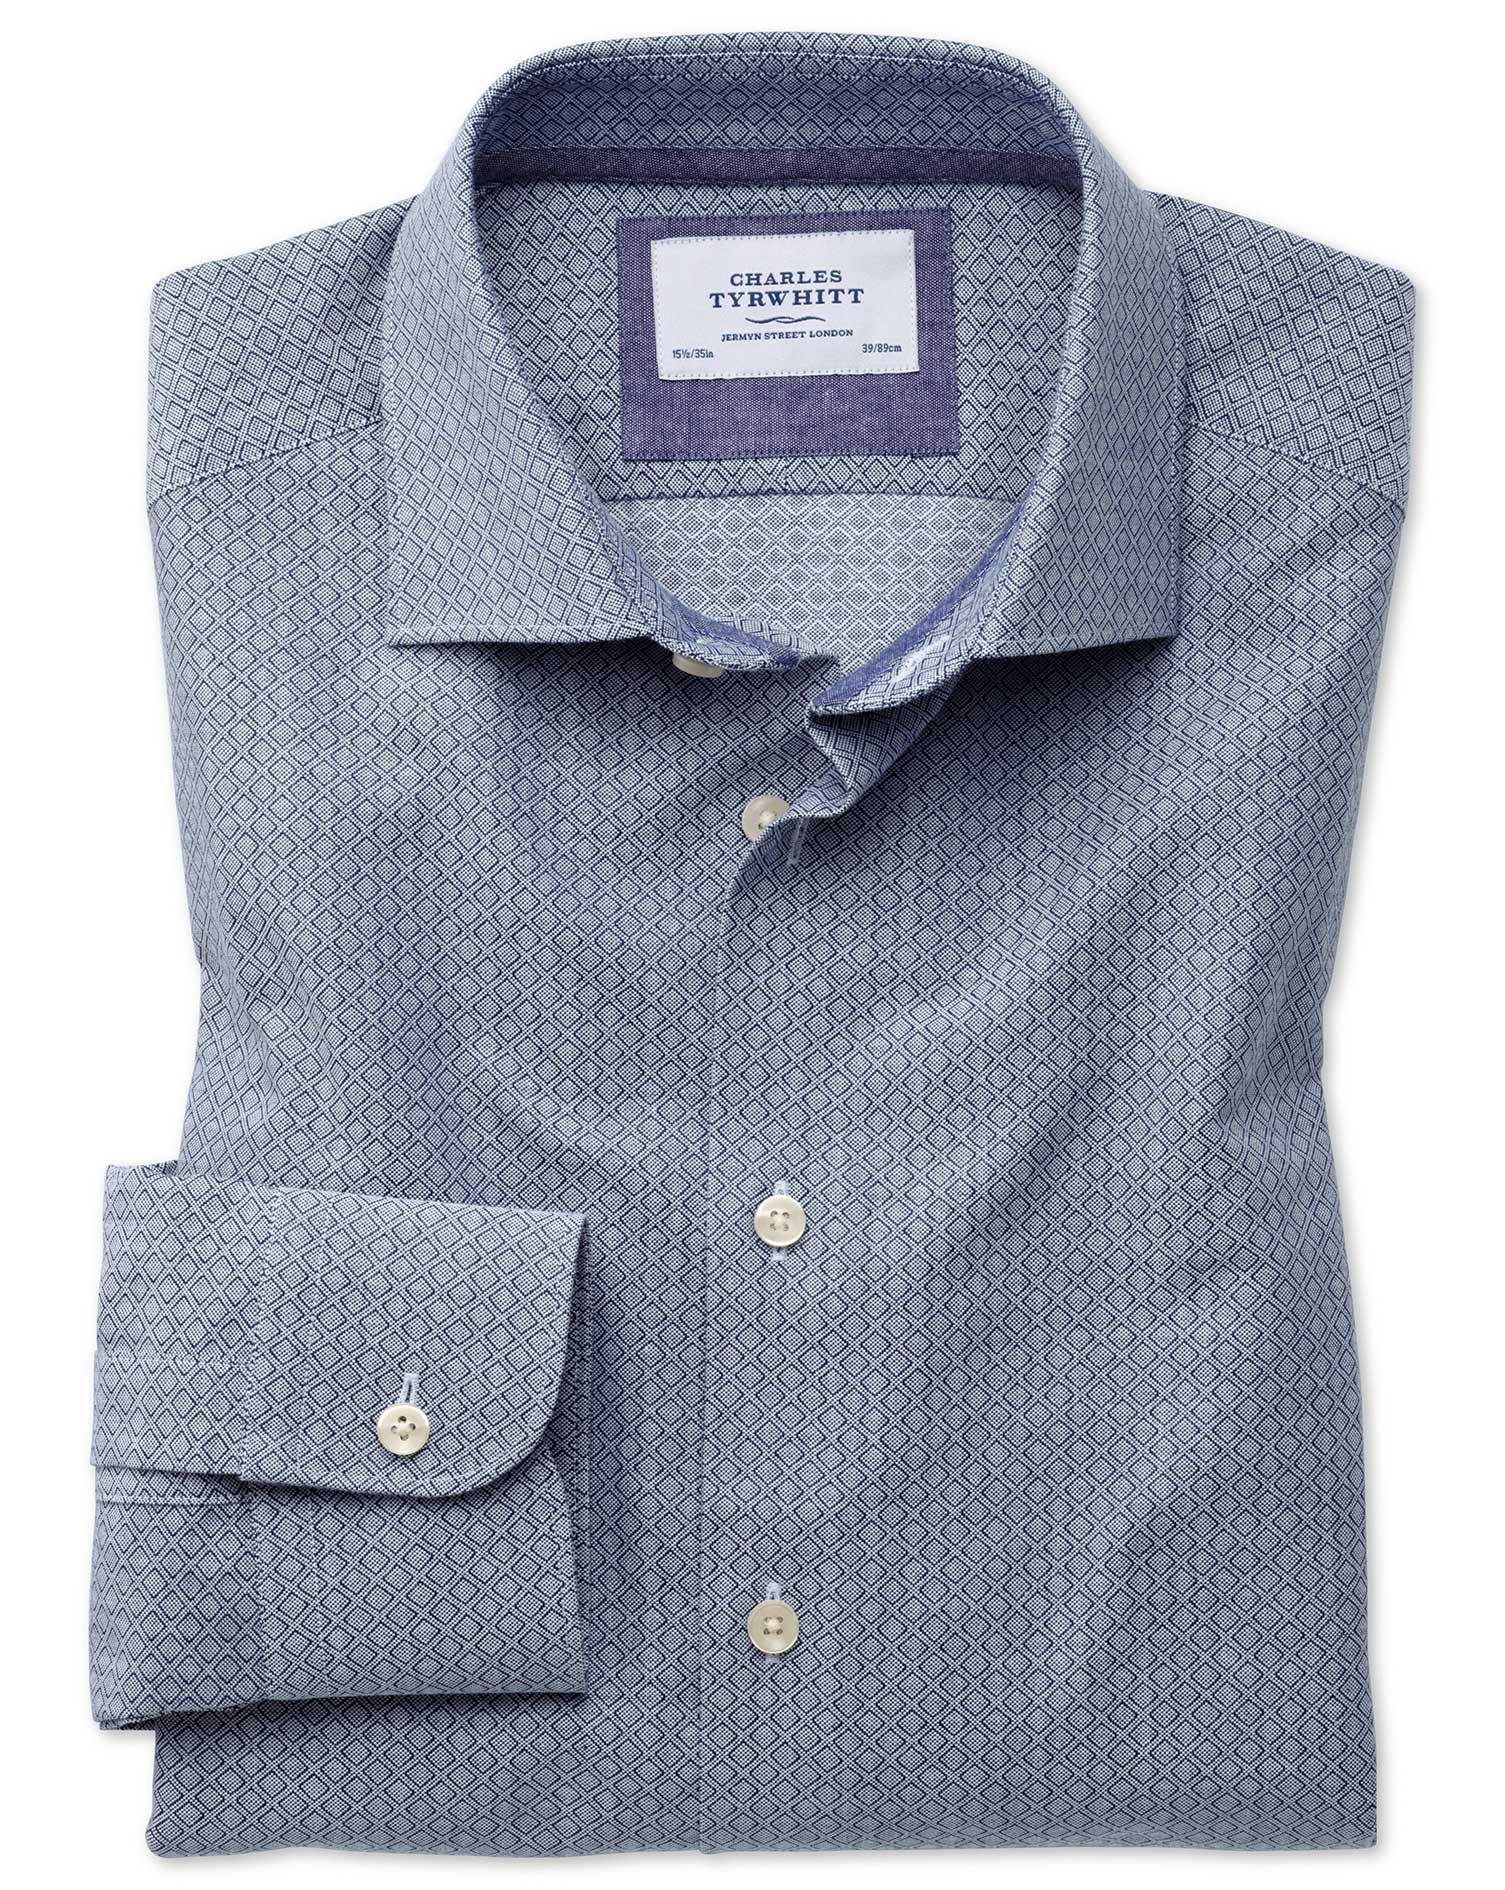 Slim Fit Semi-Cutaway Business Casual Diamond Texture Navy and Grey Cotton Formal Shirt Single Cuff